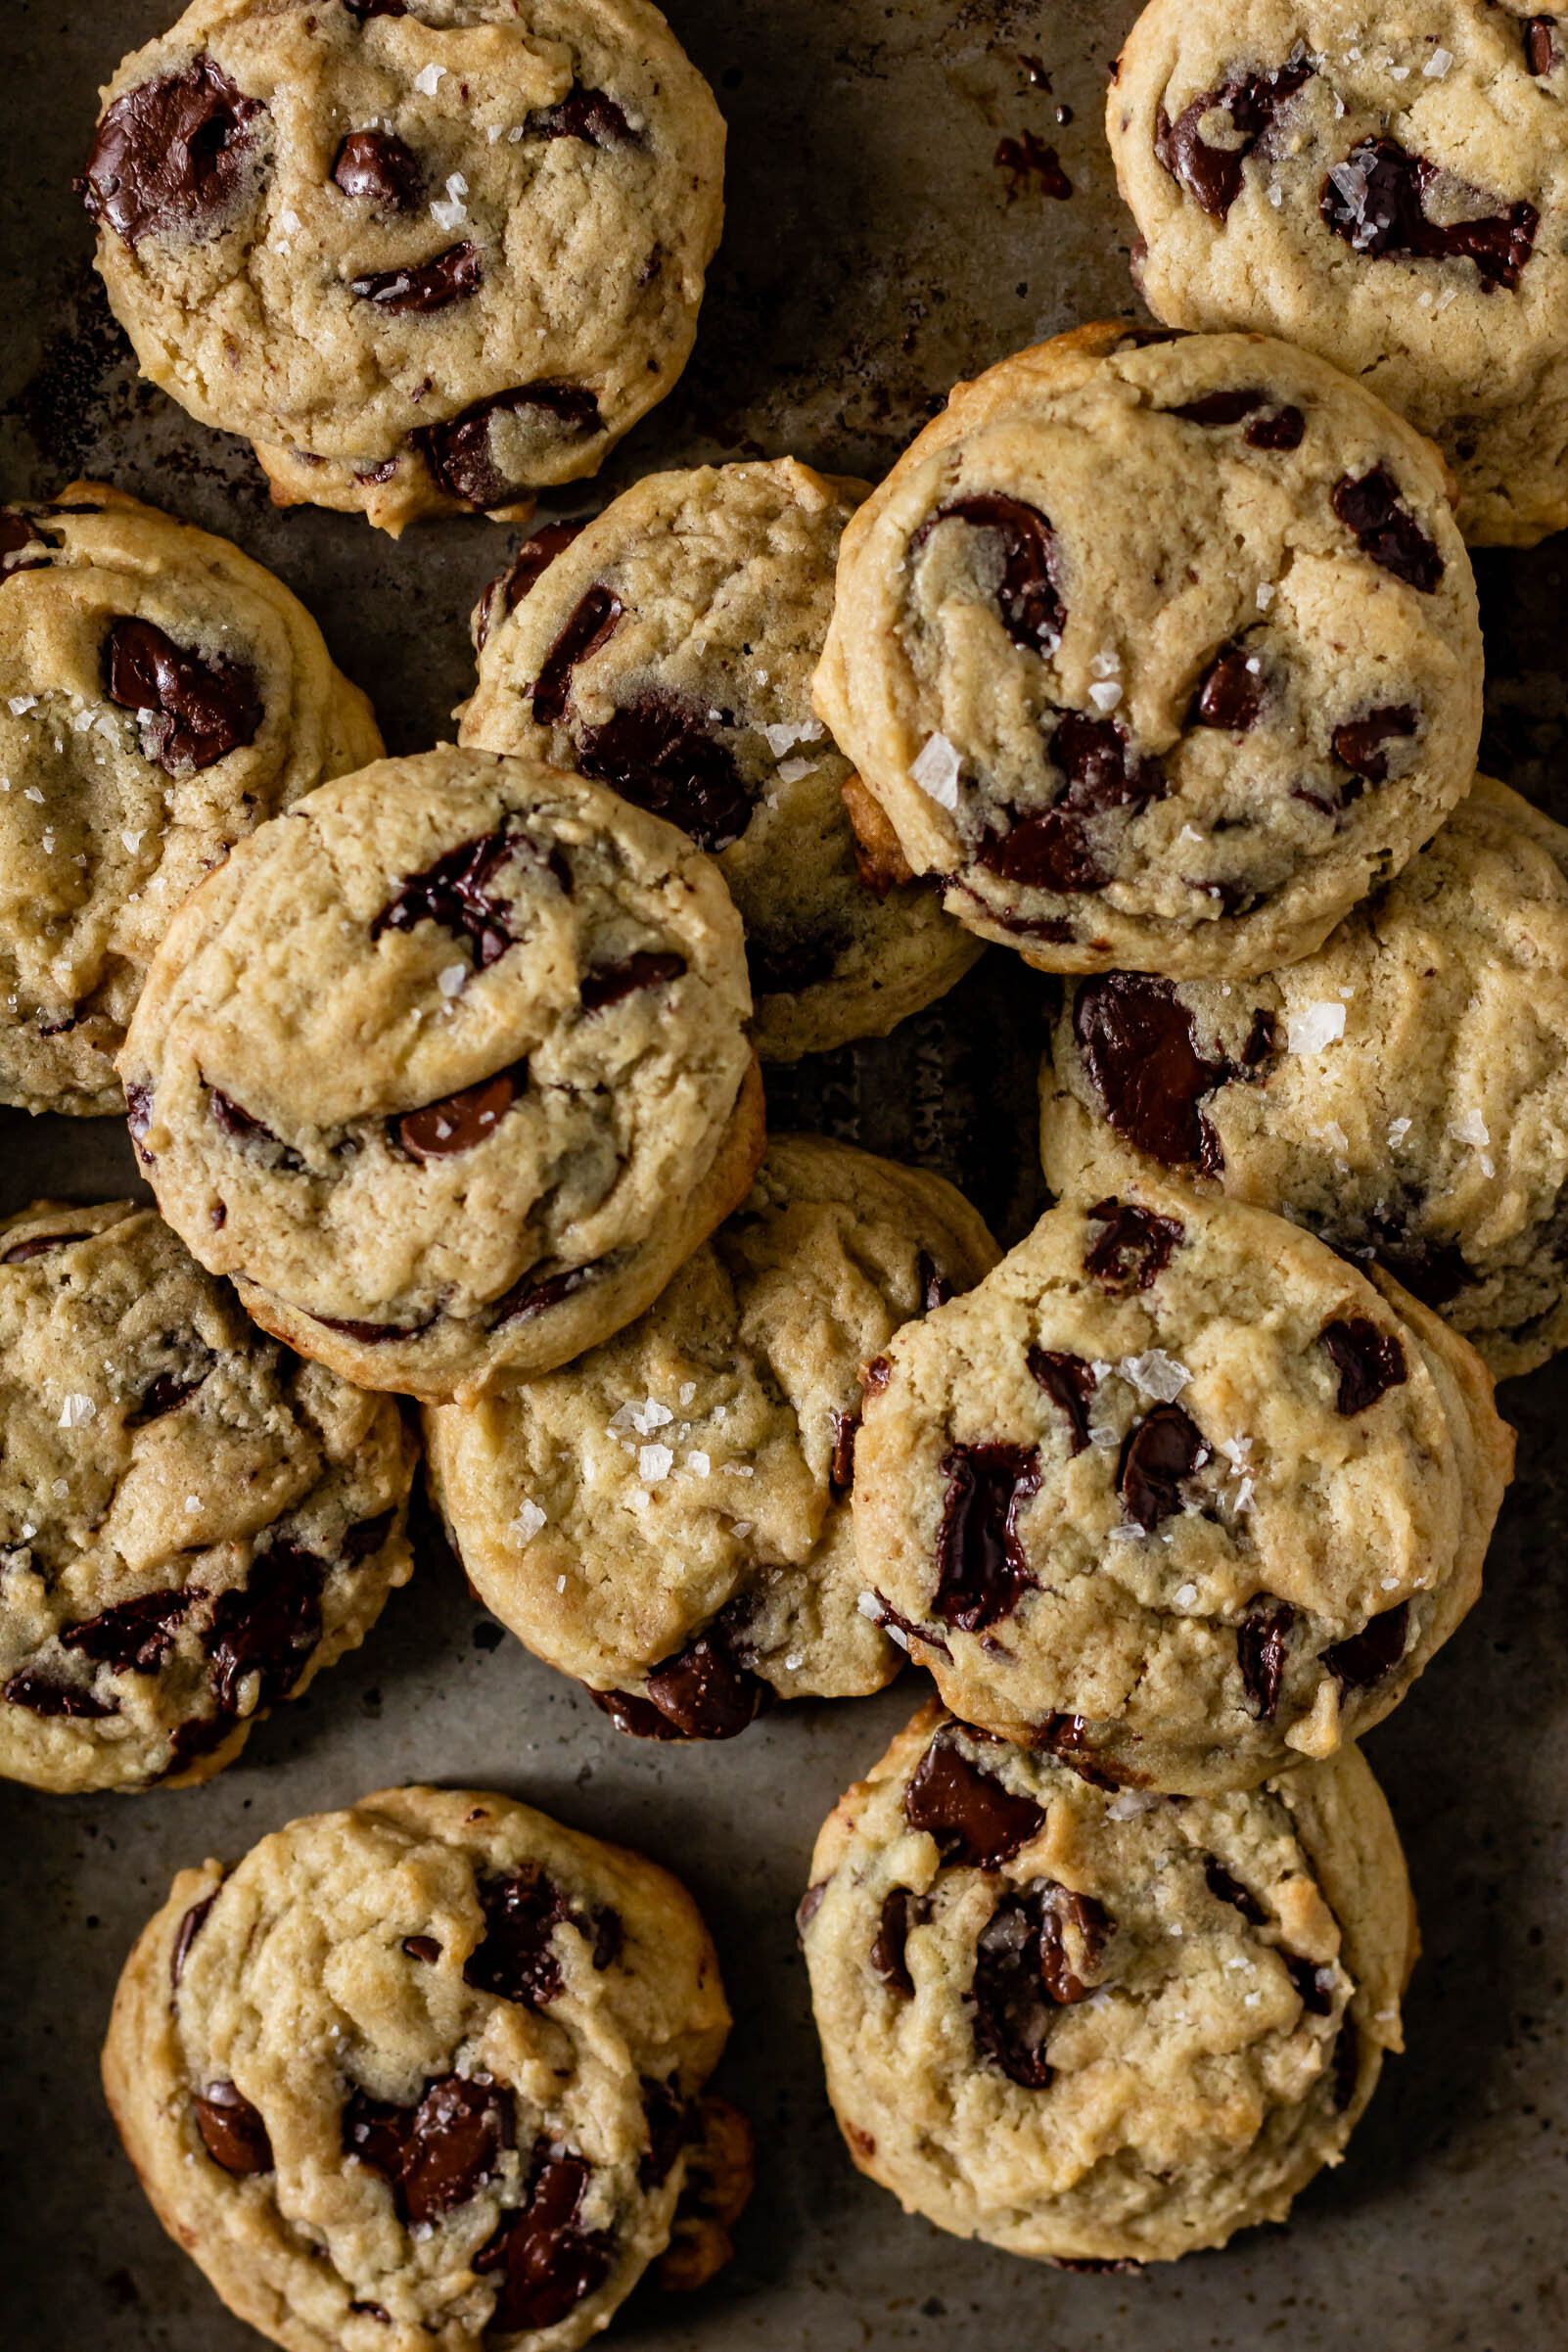 sourdough chocolate chip cookies on a baking tray.